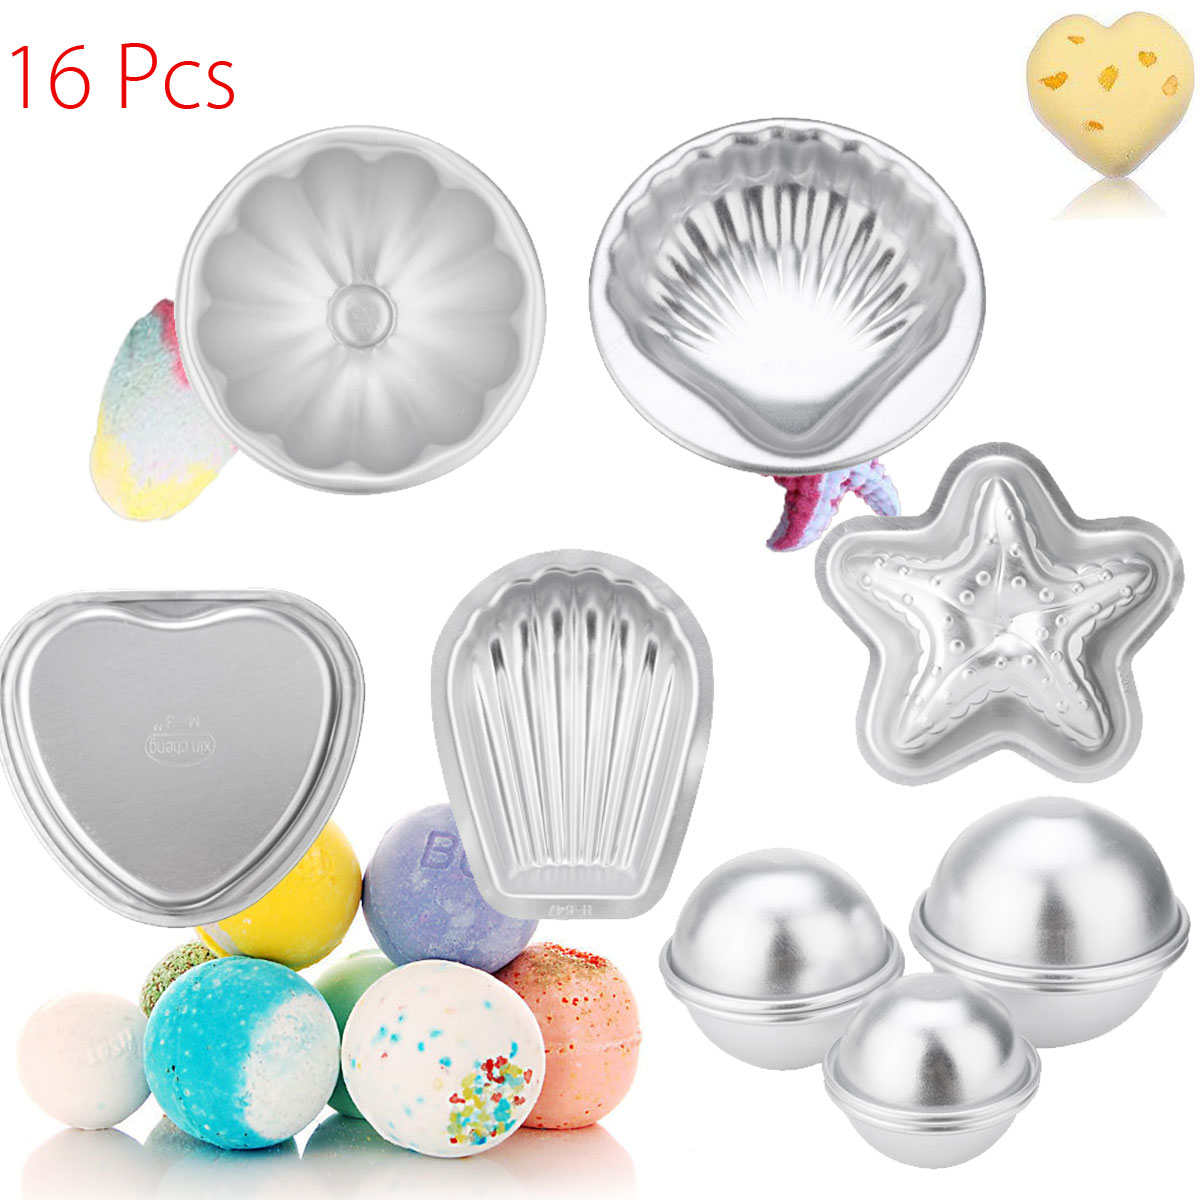 Xueqin 16Pcs Aluminum Metal Bath Bomb Mold Mould For DIY Own Fizzles Homemade CraftingXueqin 16Pcs Aluminum Metal Bath Bomb Mold Mould For DIY Own Fizzles Homemade Crafting